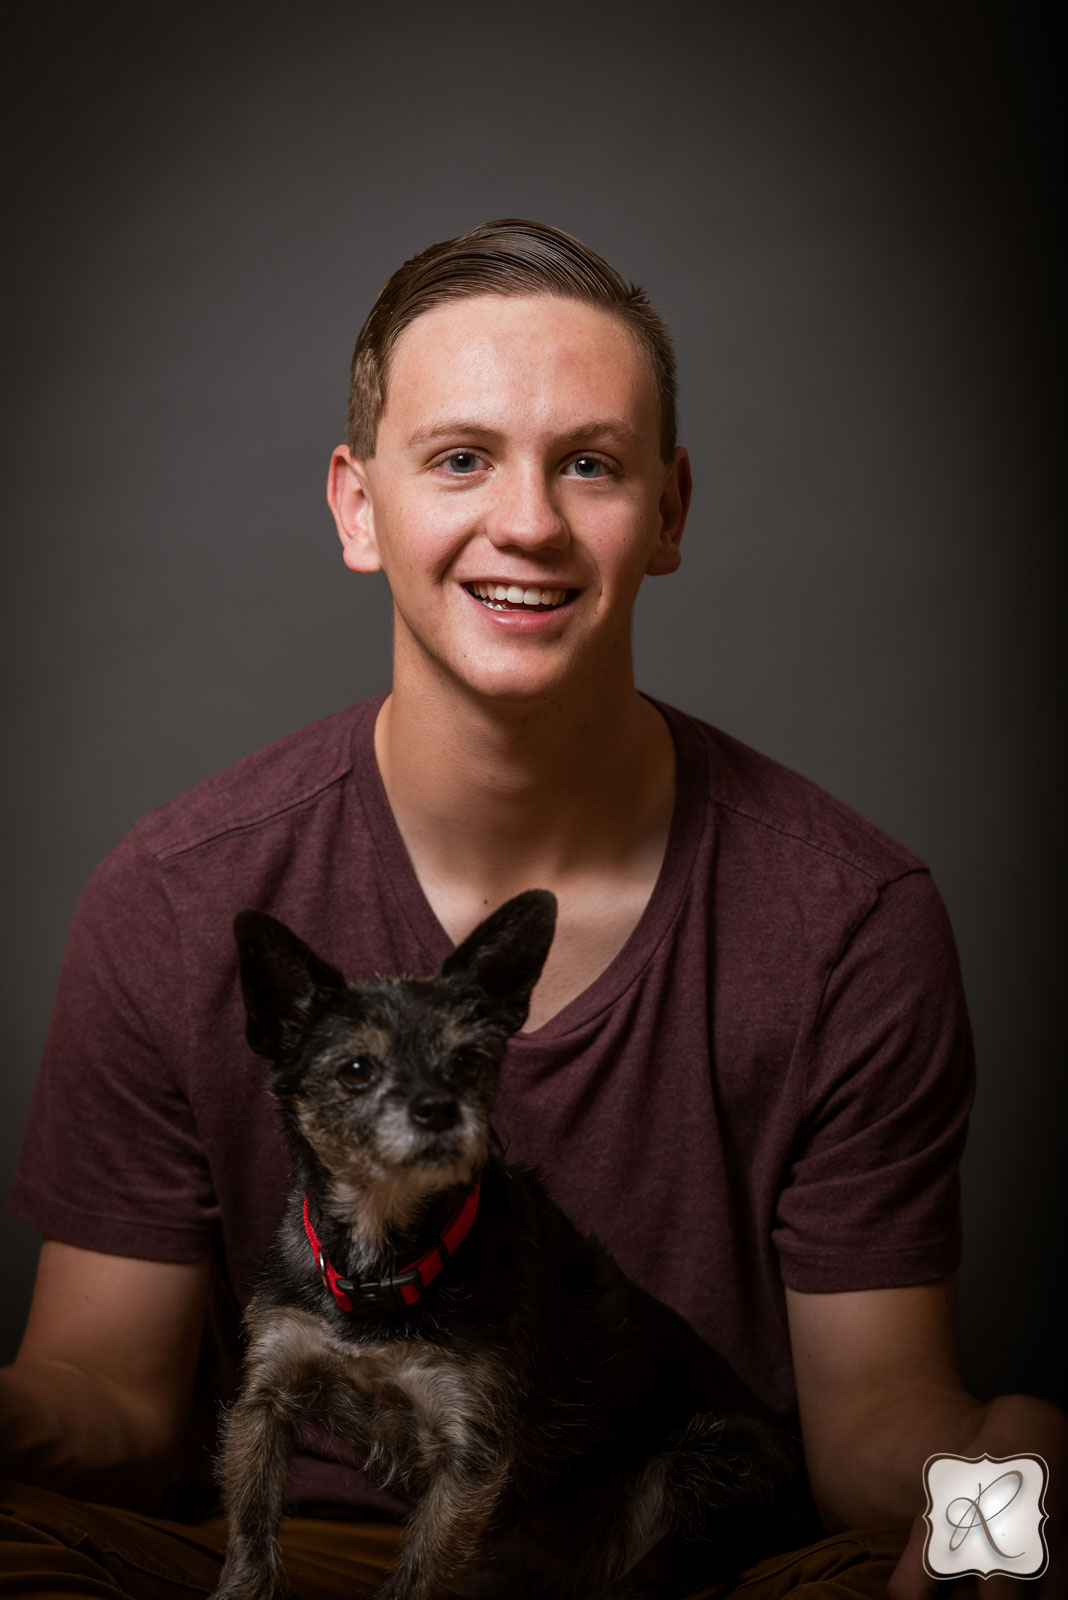 Senior Pictures with Pets